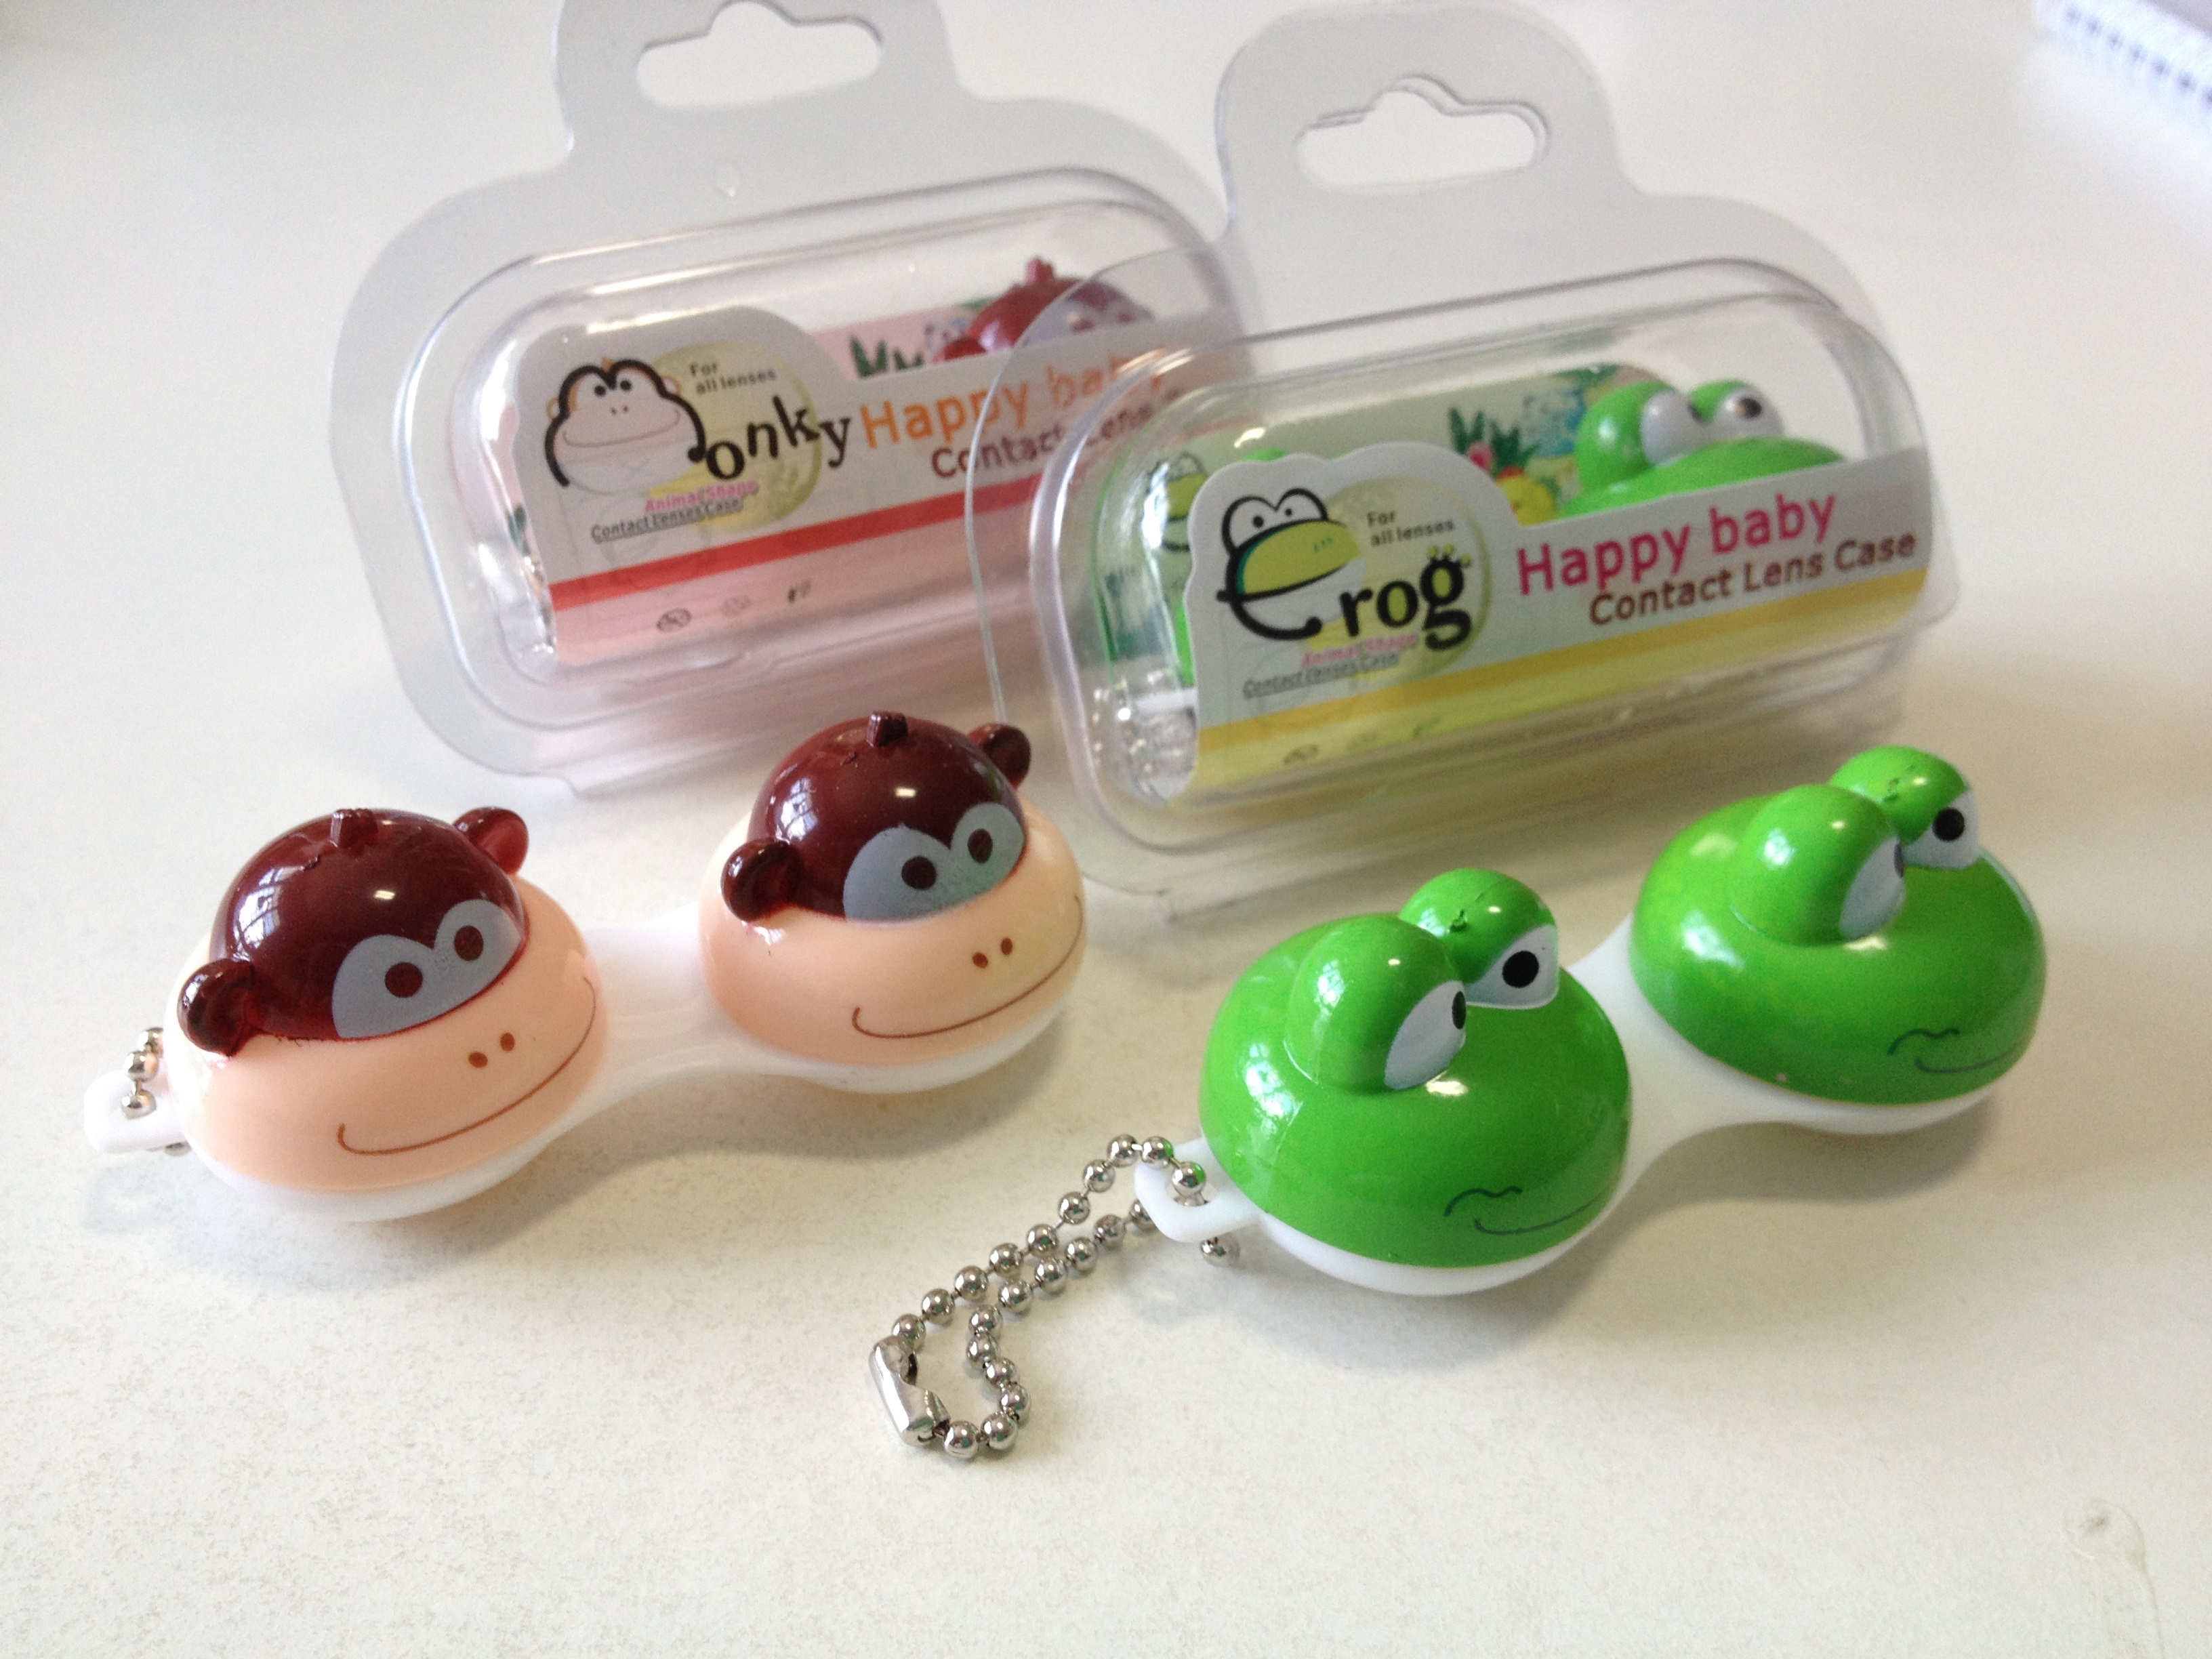 Happy Cute Animals Contact Lens Case